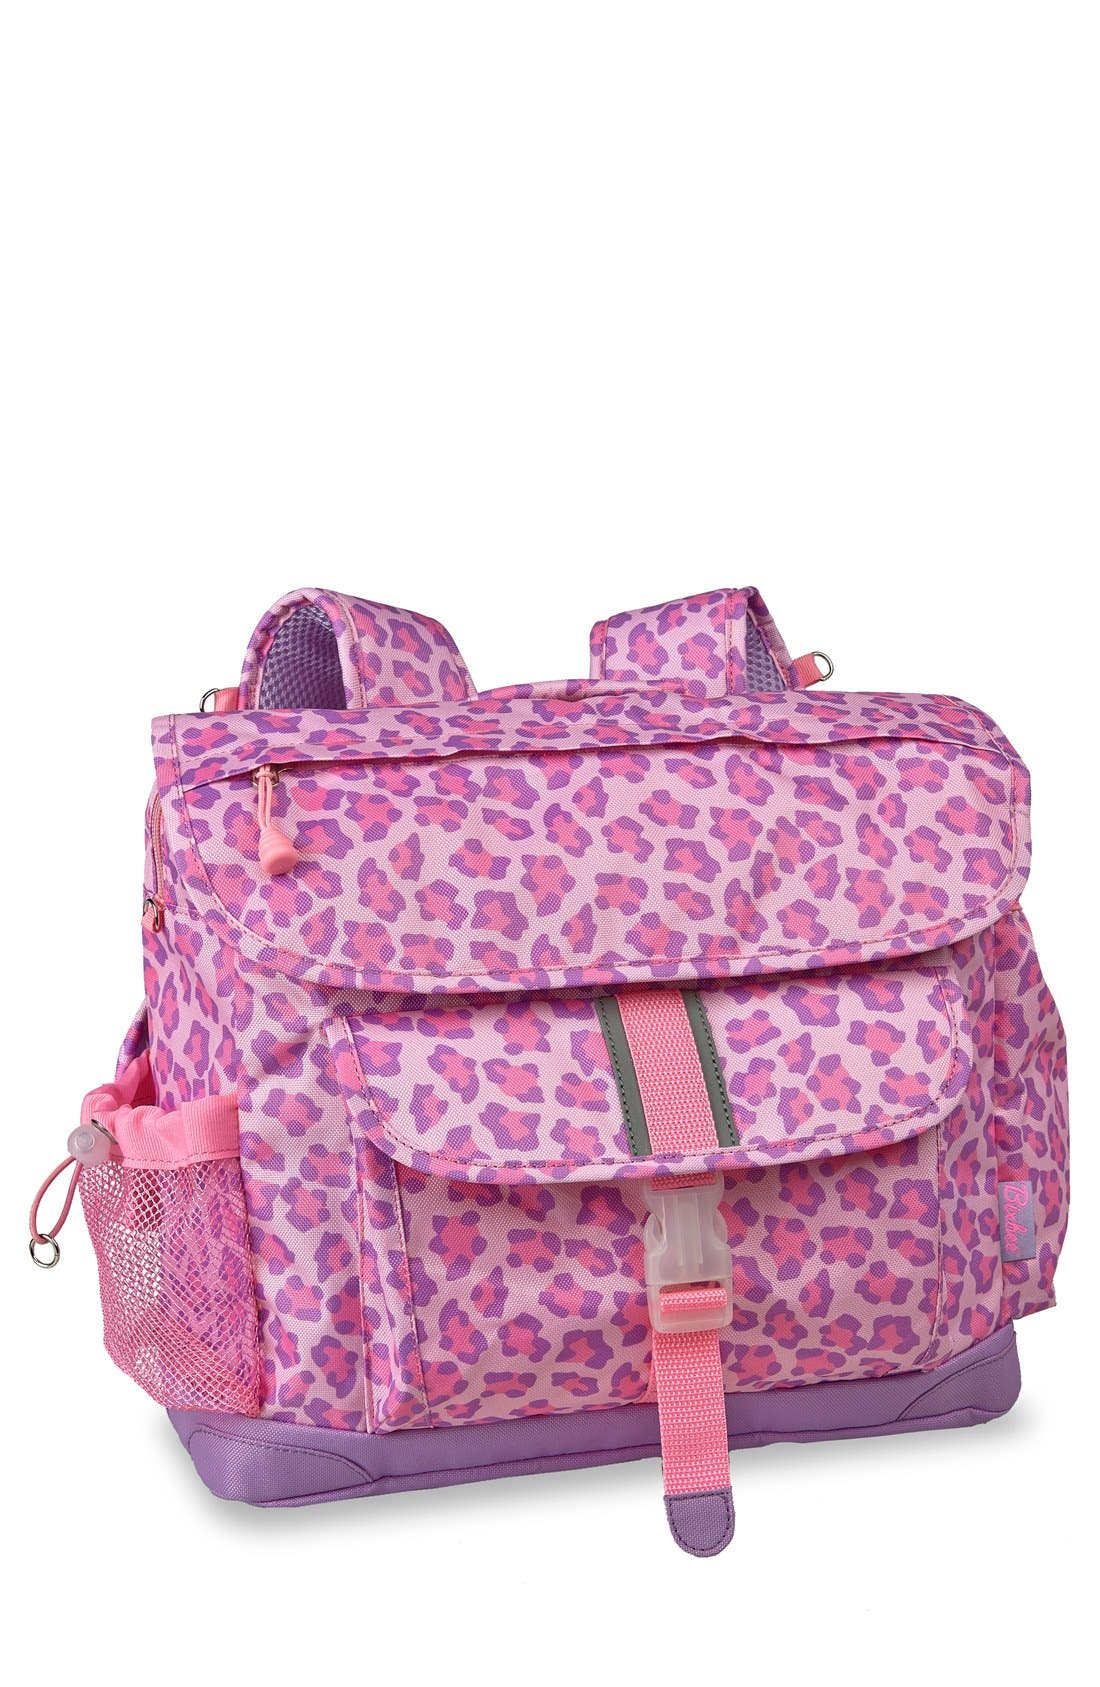 Alternate Image 1 Selected - Bixbee 'Large Sassy Spots' Leopard Print Backpack (Kids)